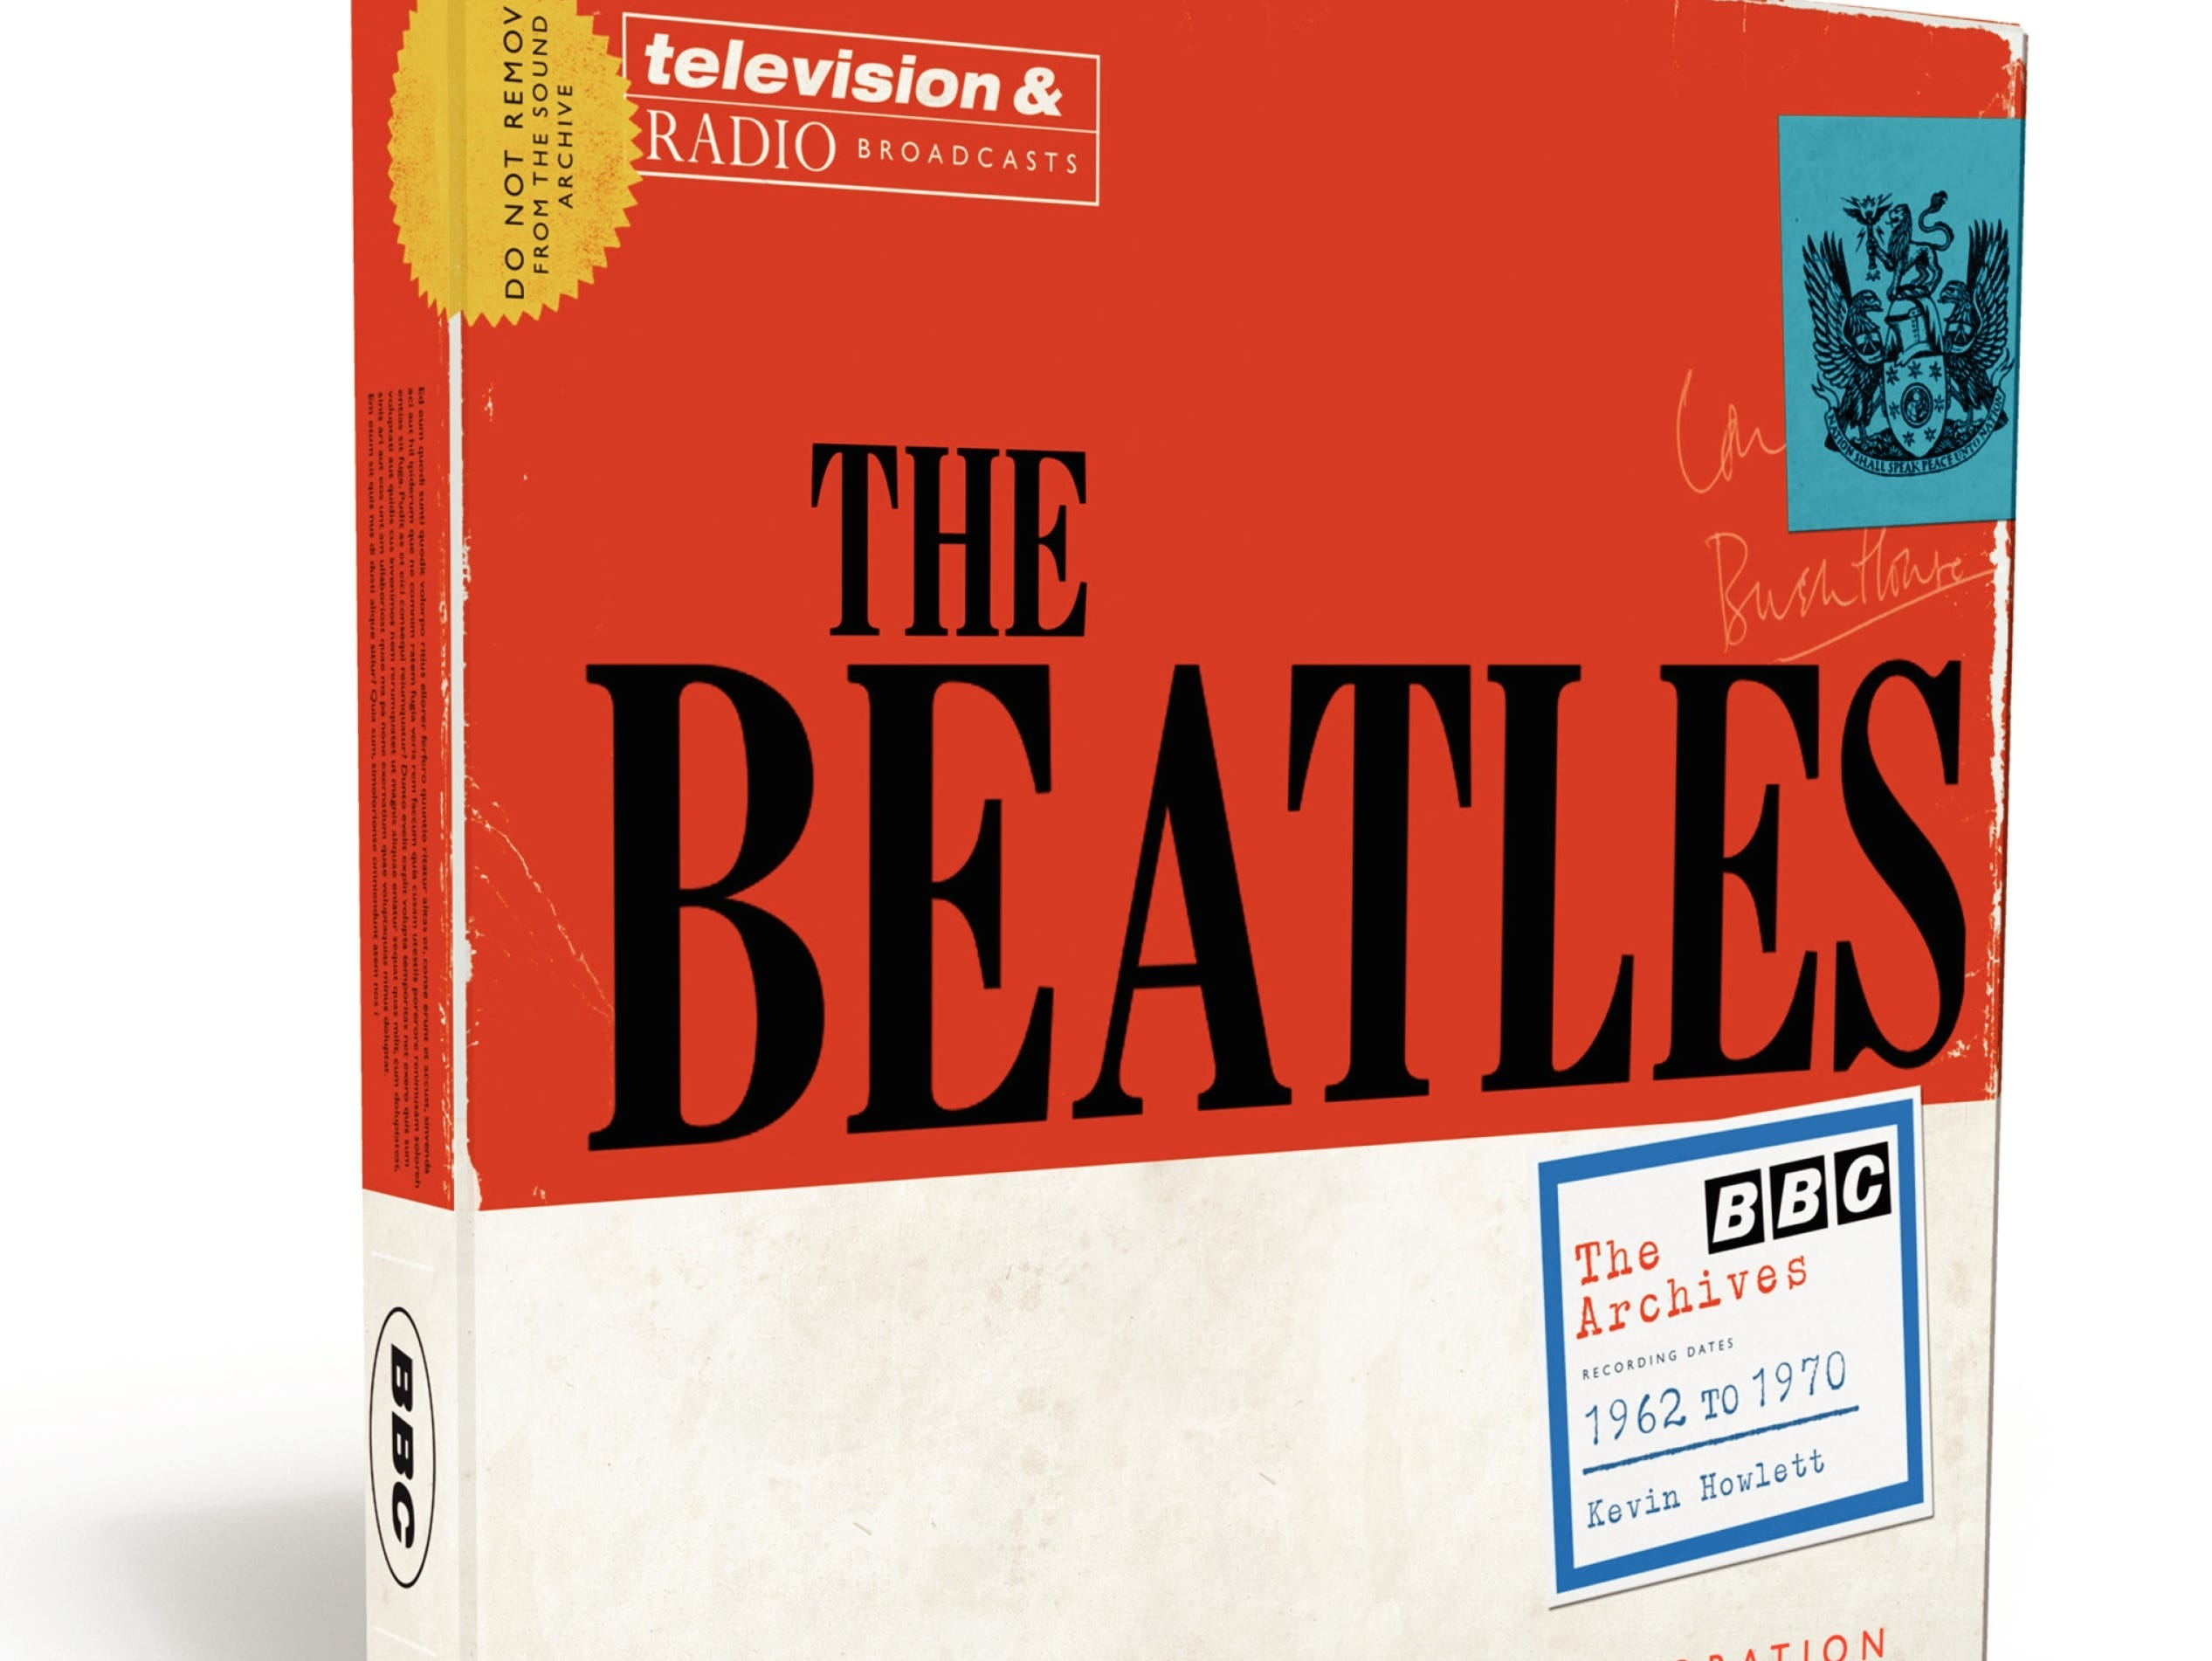 'The Beatles: The BBC Archives' book